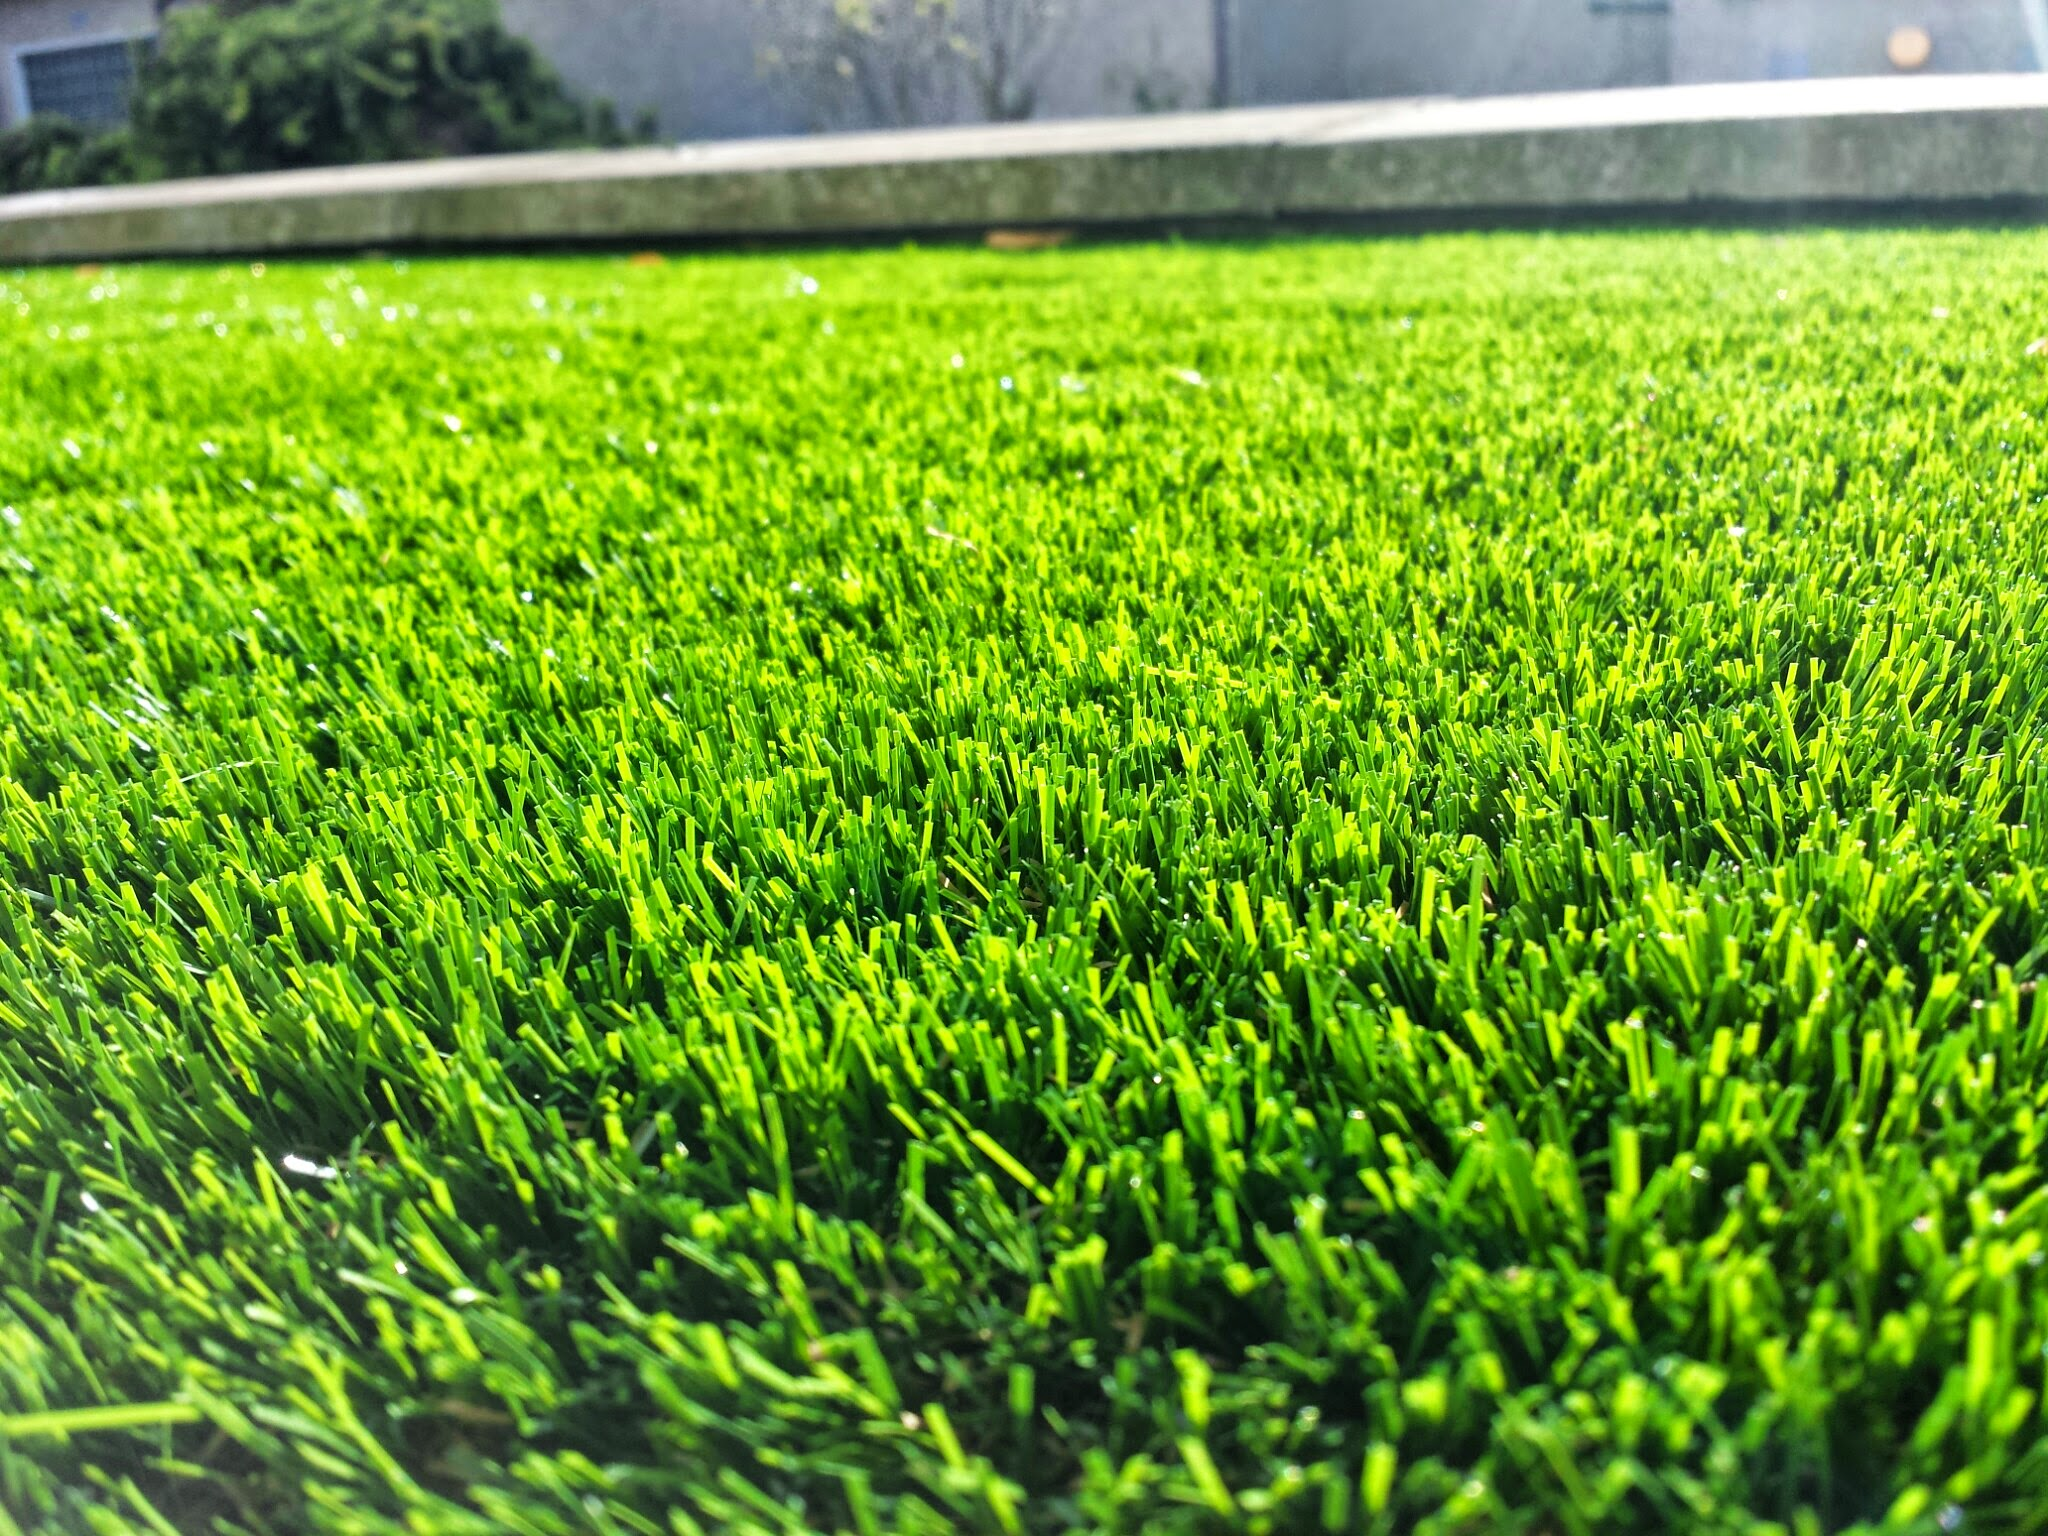 close up of artificial lawn